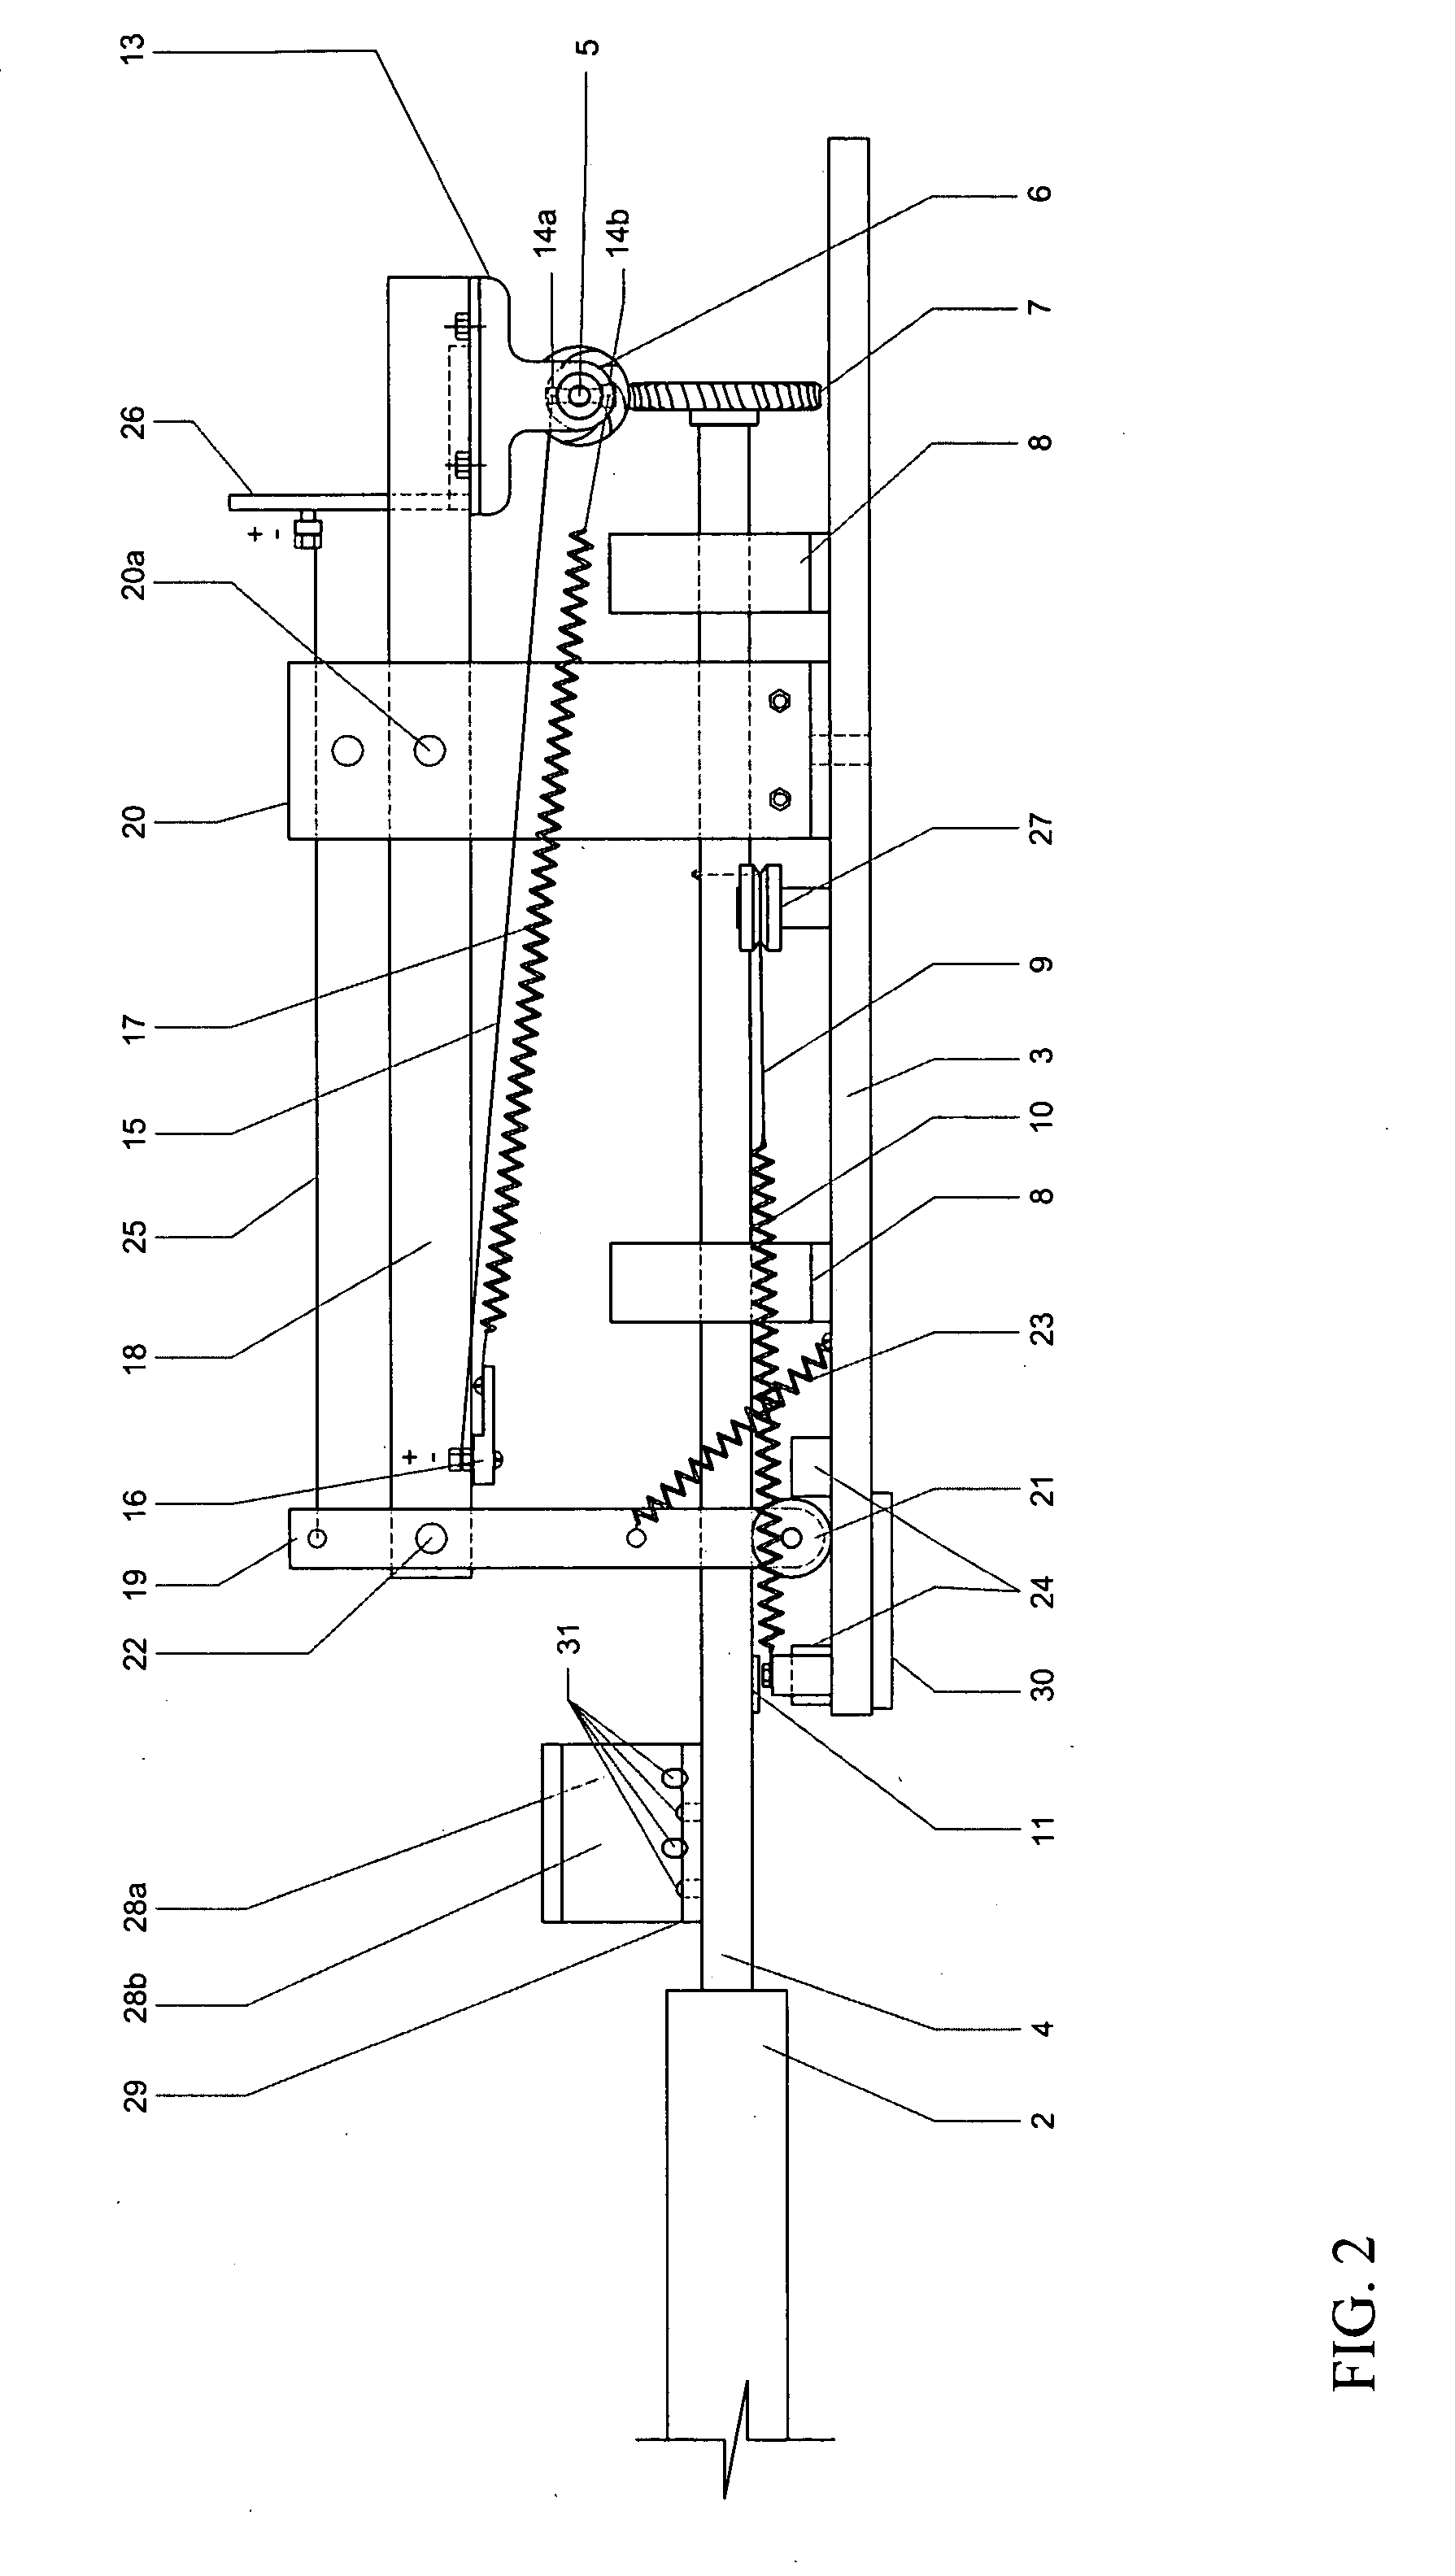 1971 buick skylark engine wiring diagram   40 wiring